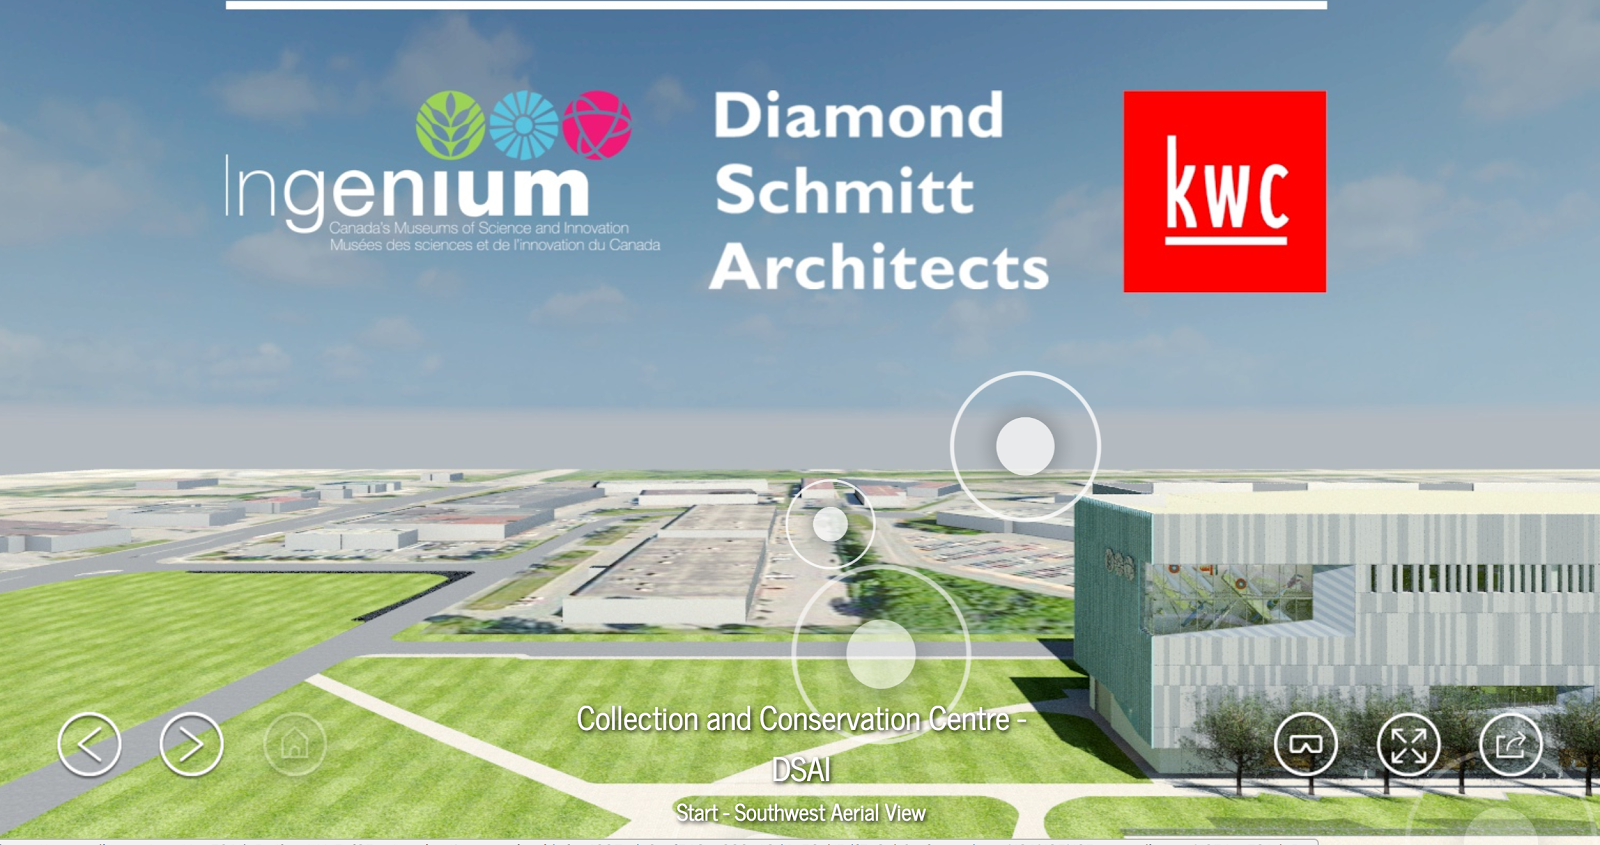 VR Architecture: Sharing a Vision, with Andrew Chung of Diamond Schmitt Architects